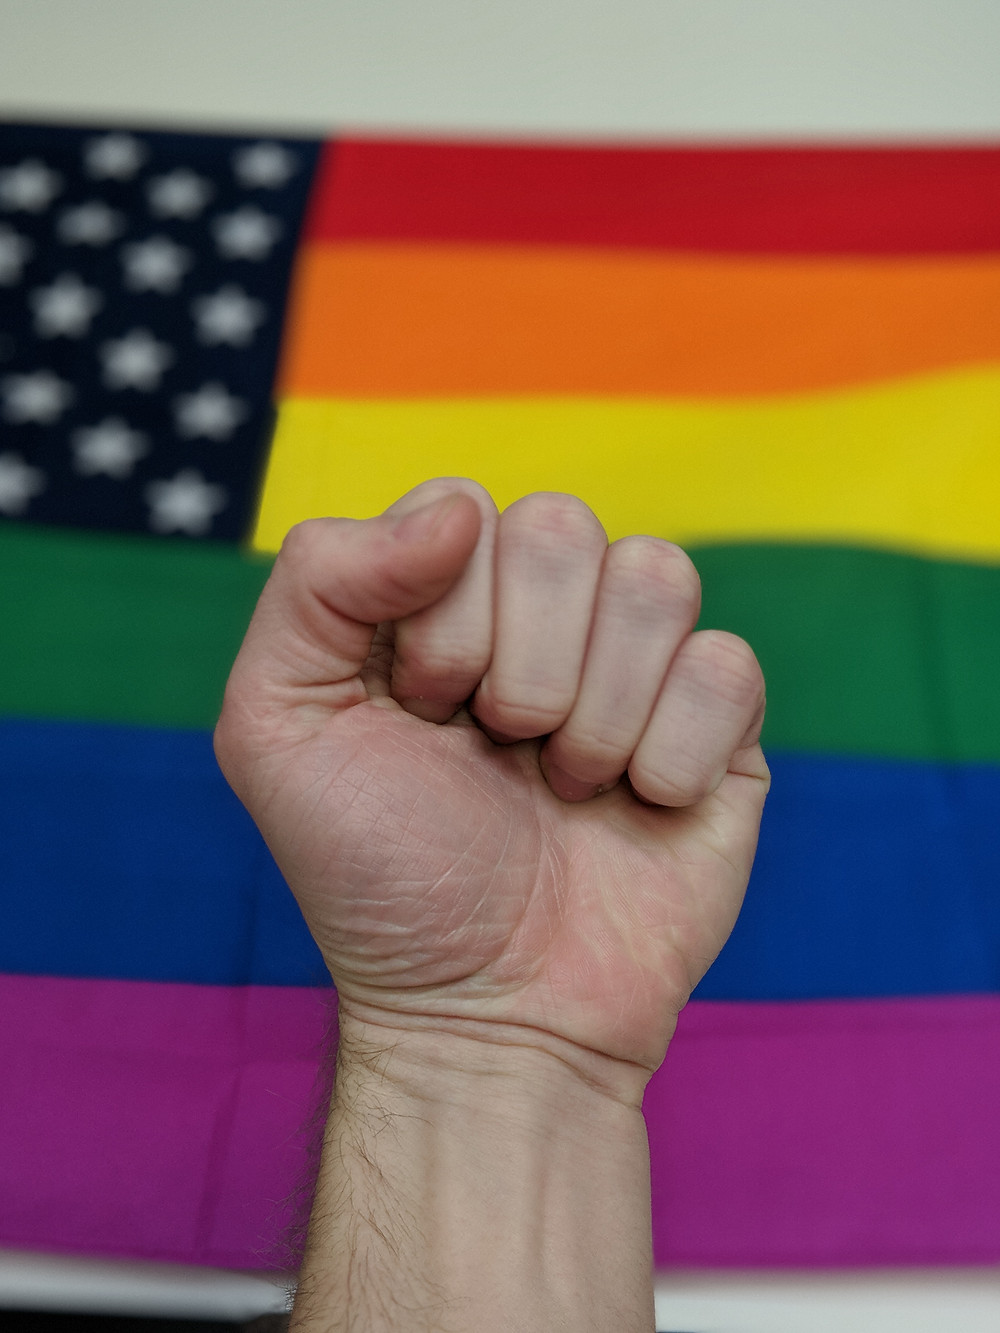 fist in front of rainbow lgbt flag